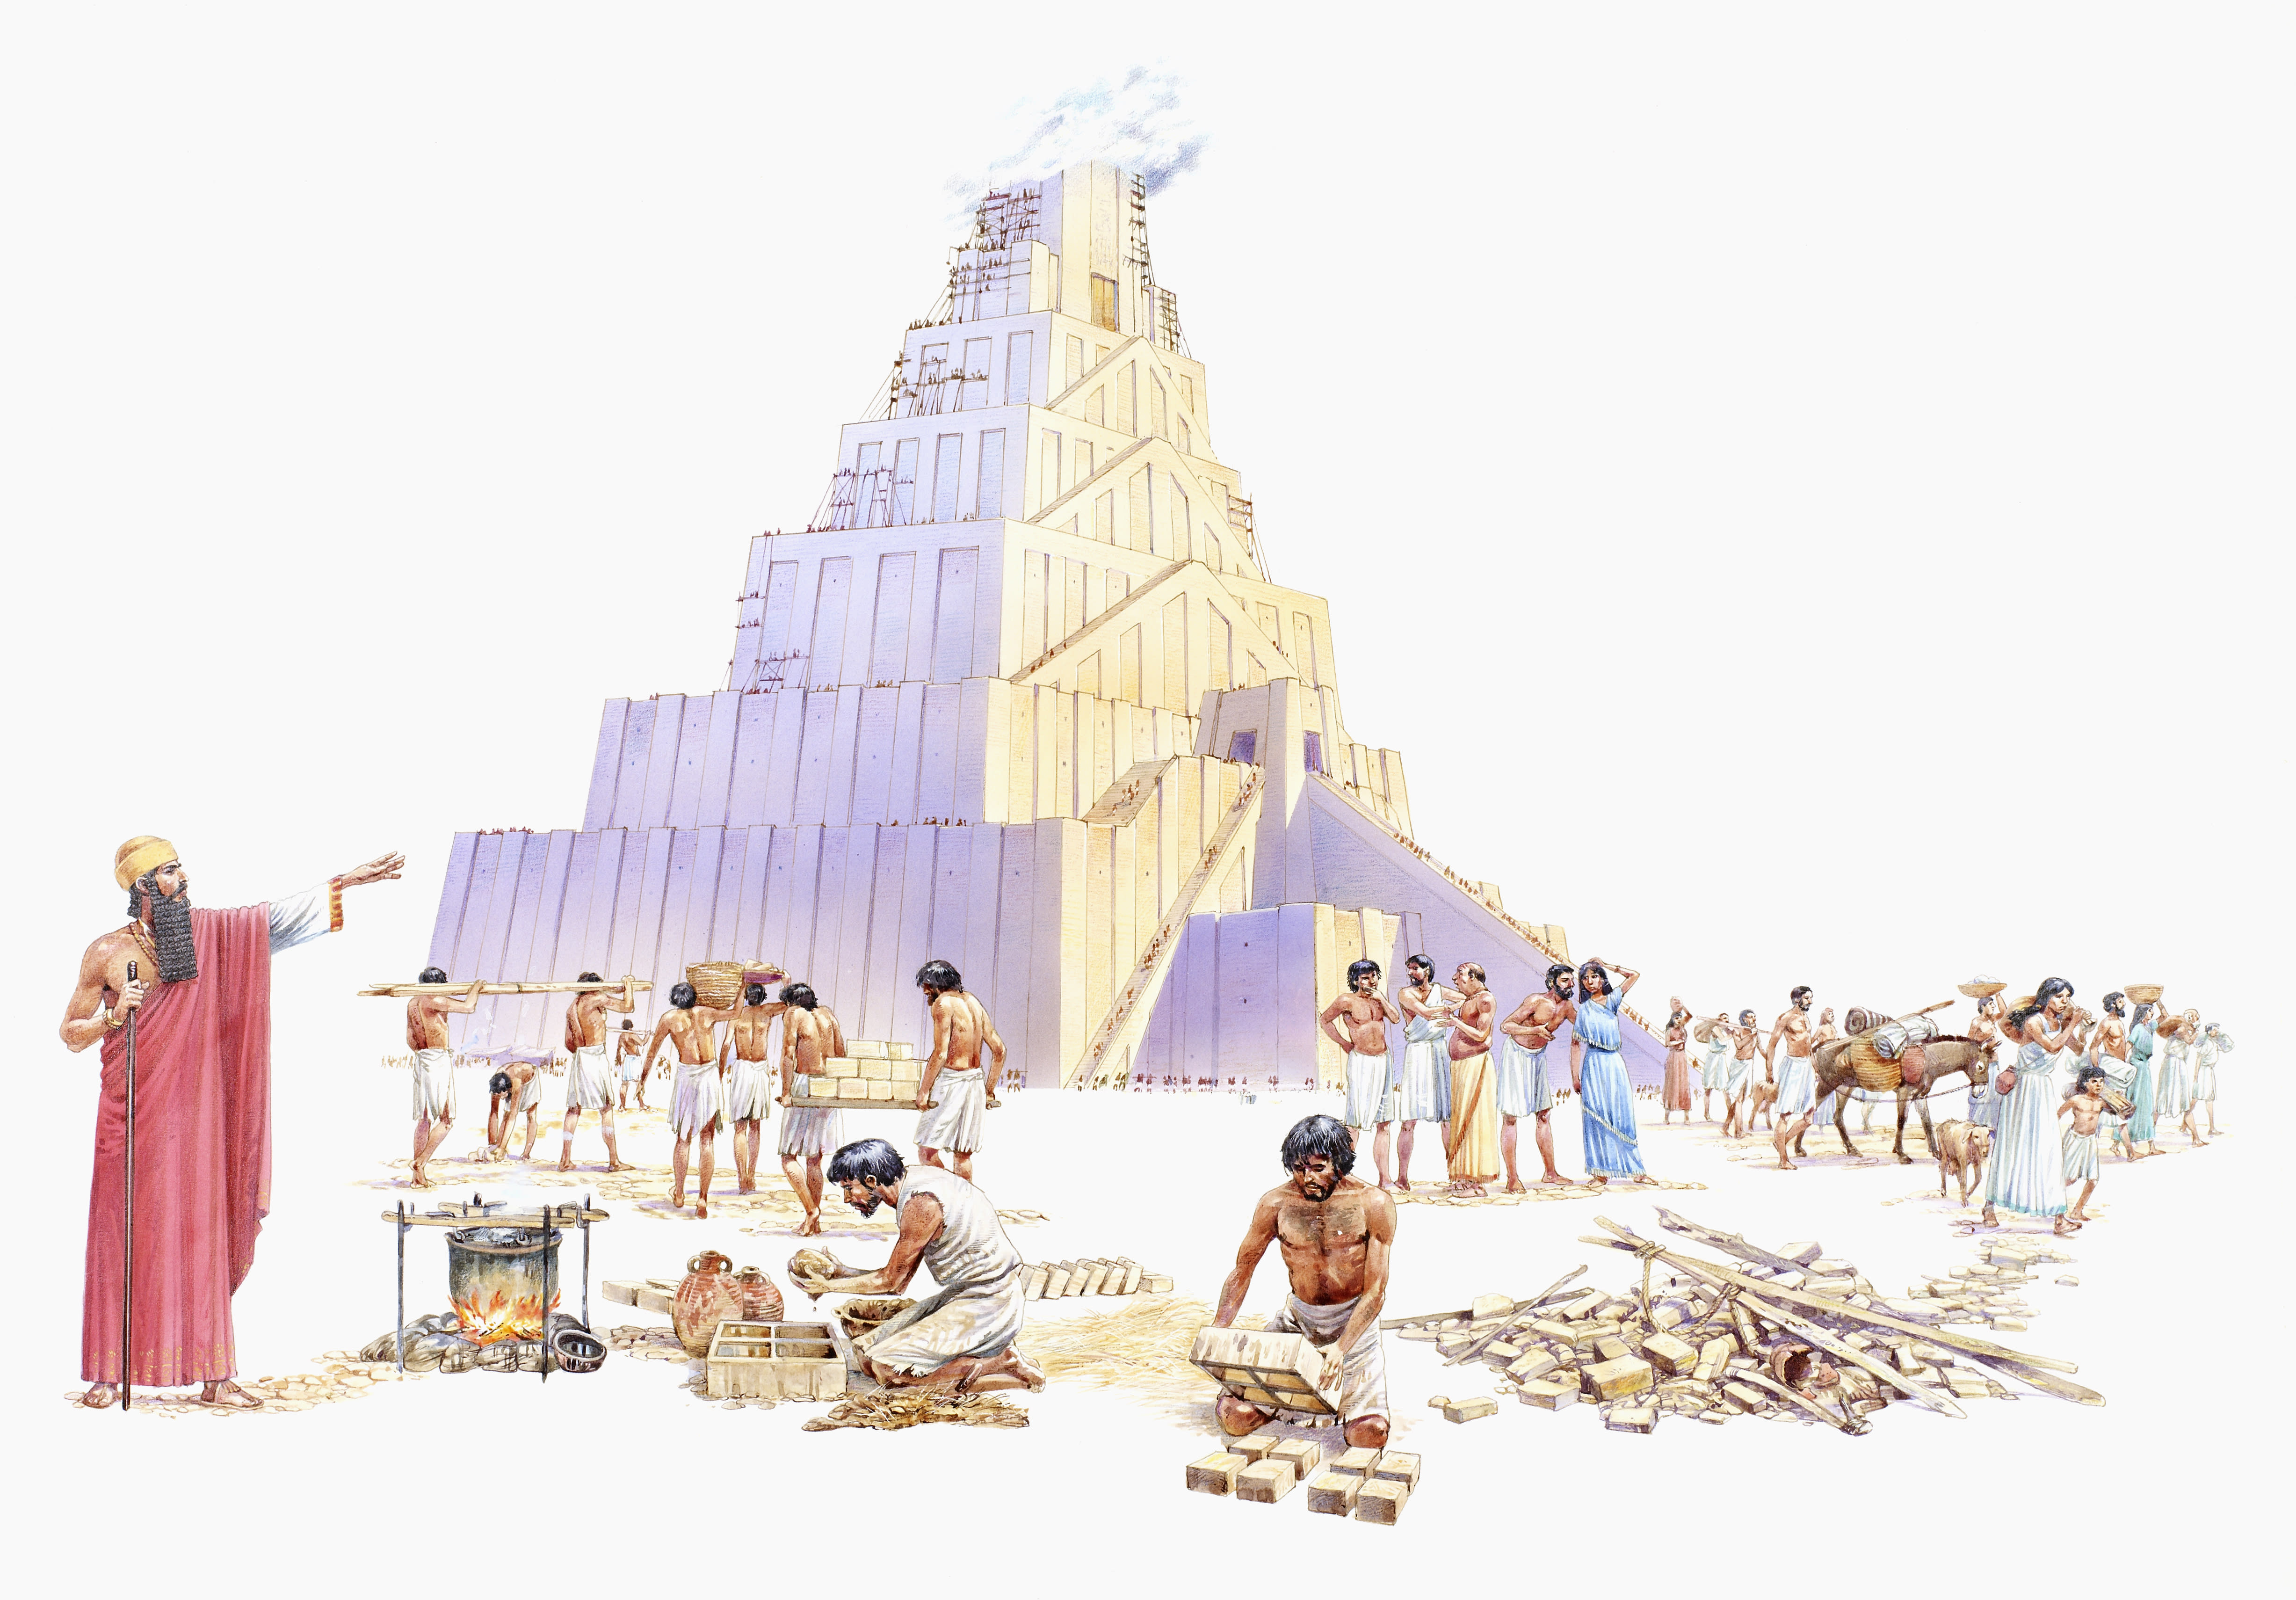 Image of what the Tower of Babel may have looked like